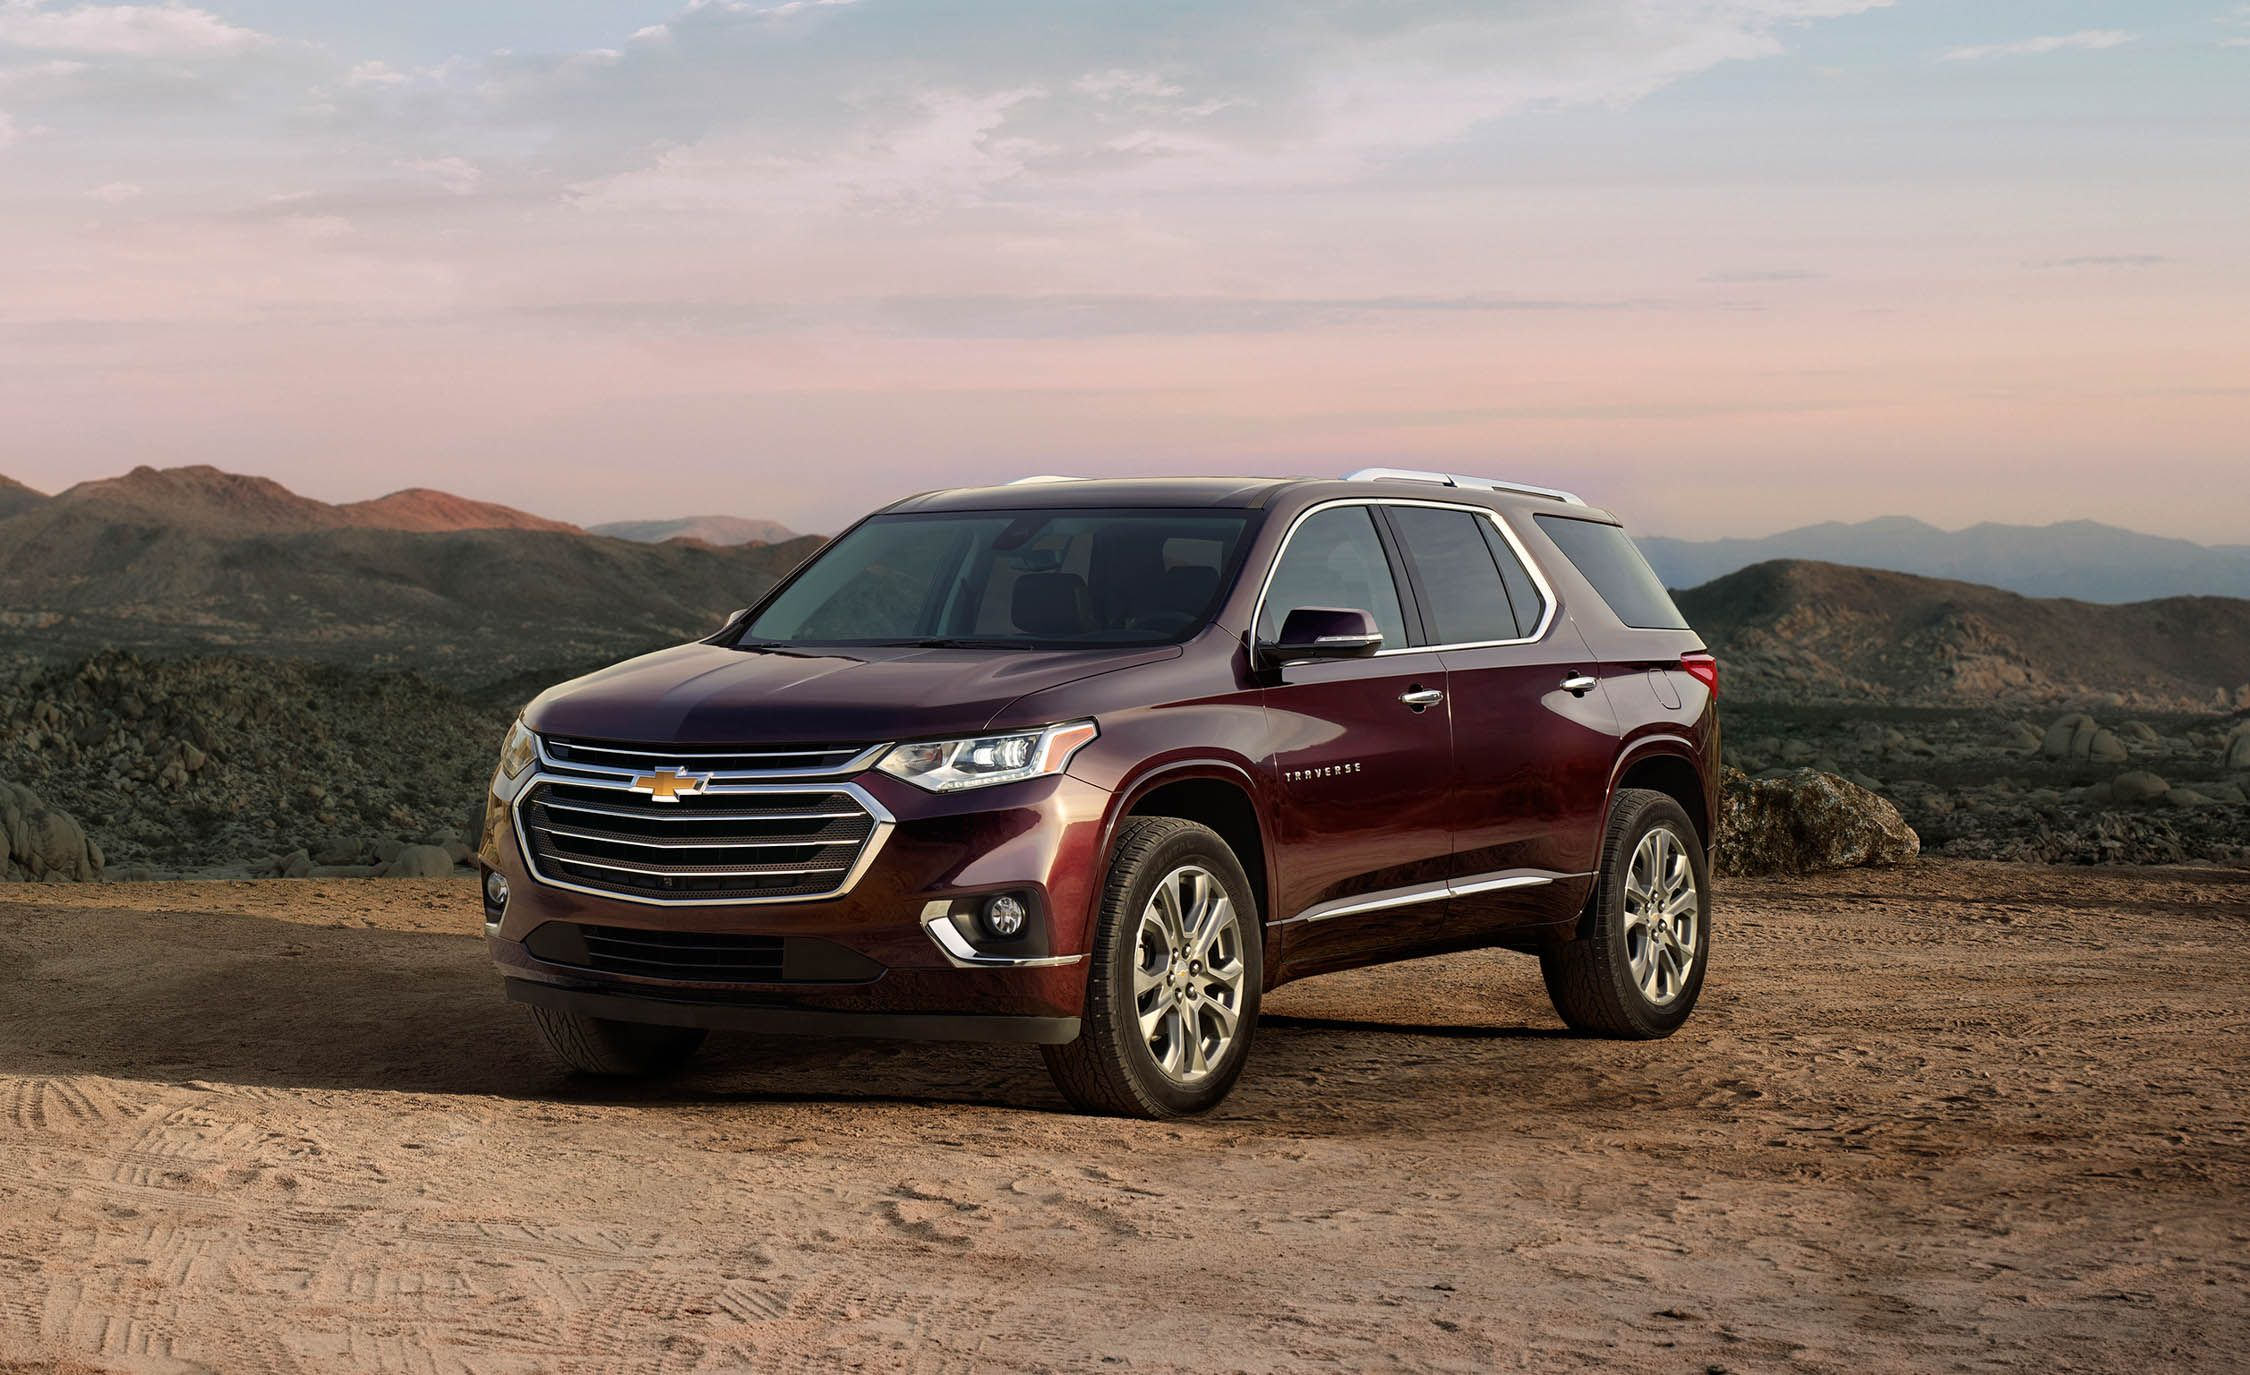 Chevrolet Announces Pricing for the New 2018 Traverse SUV  News